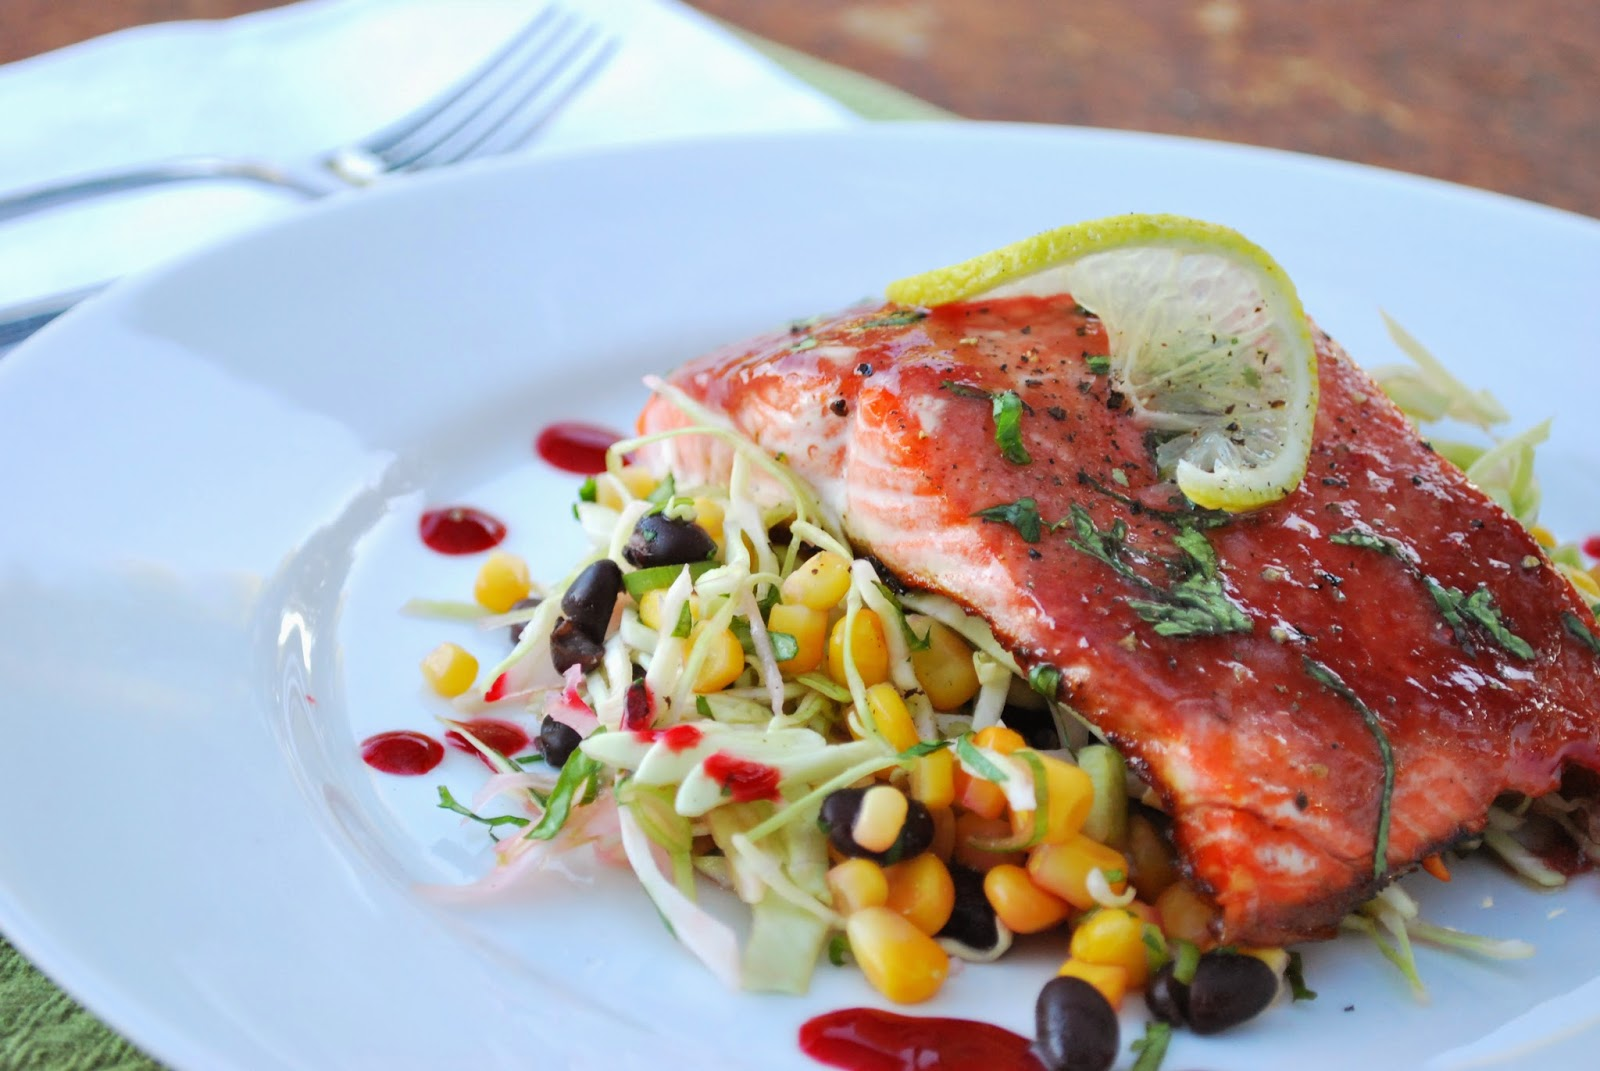 Raspberry Miso Glazed Salmon with Cabbage Slaw from McKenzie: